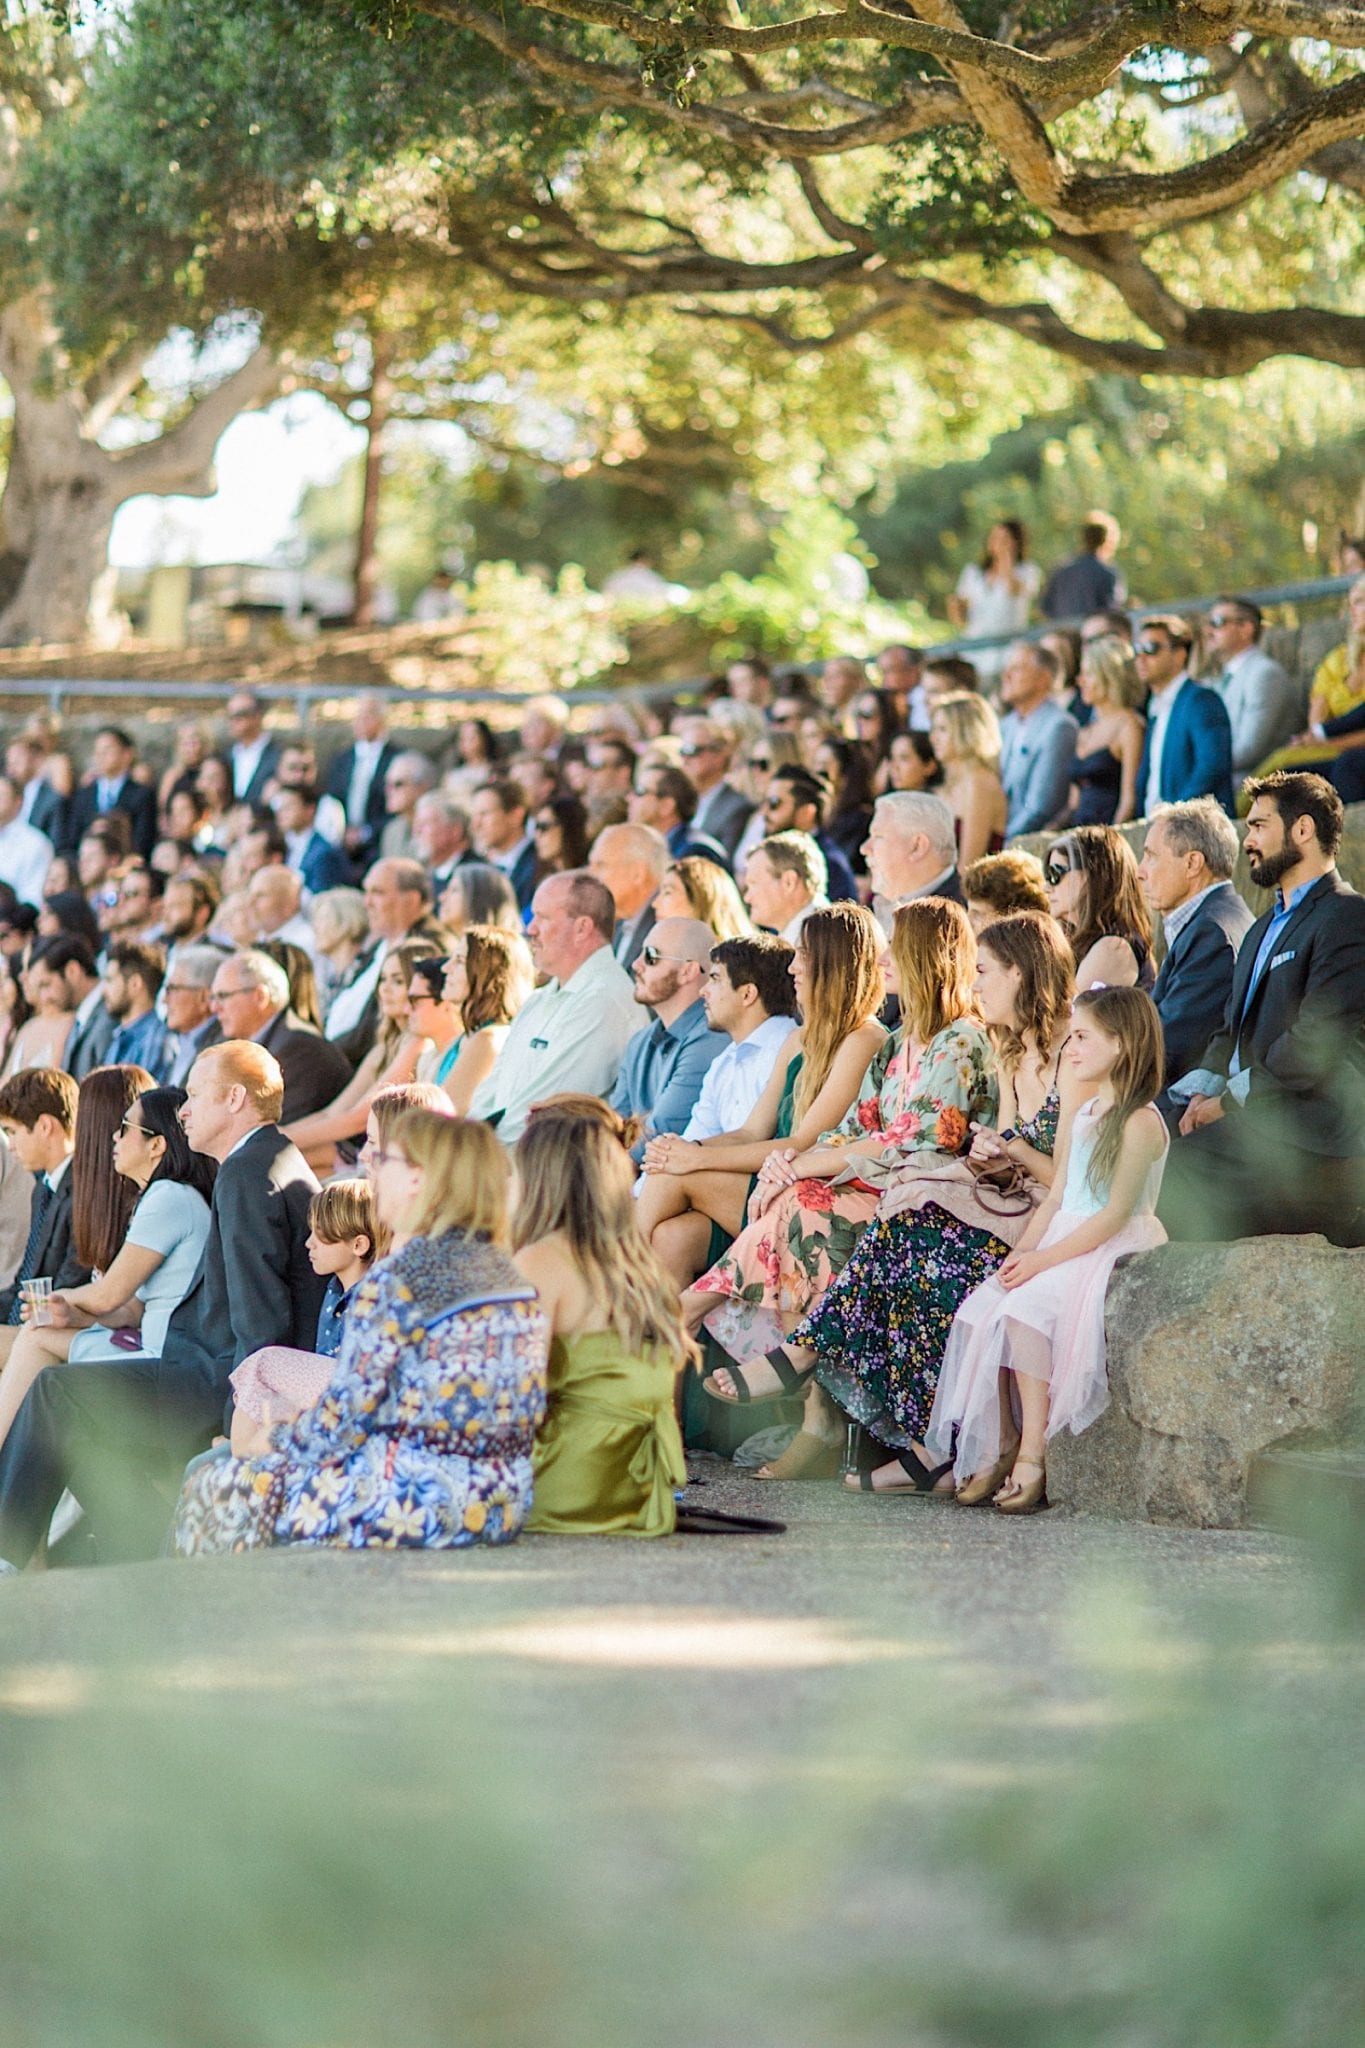 Wedding at Elings Park in Santa Barbara, Santa Barbara Wedding at Elings Park, Elings Park Wedding in Santa Barbara, Summer wedding in Santa Barbara at Elings Park, Santa Barbara Wedding Venue, Places to get married in Santa Barbara, Santa Barbara wedding, Affordable wedding venues Santa Barbara, Santa Barbara wedding photography, Santa Barbara wedding photographer, Rustic wedding venue in Santa Barbara, Wedding venues in Santa Barbara, Outdoor wedding venue in Santa Barbara,